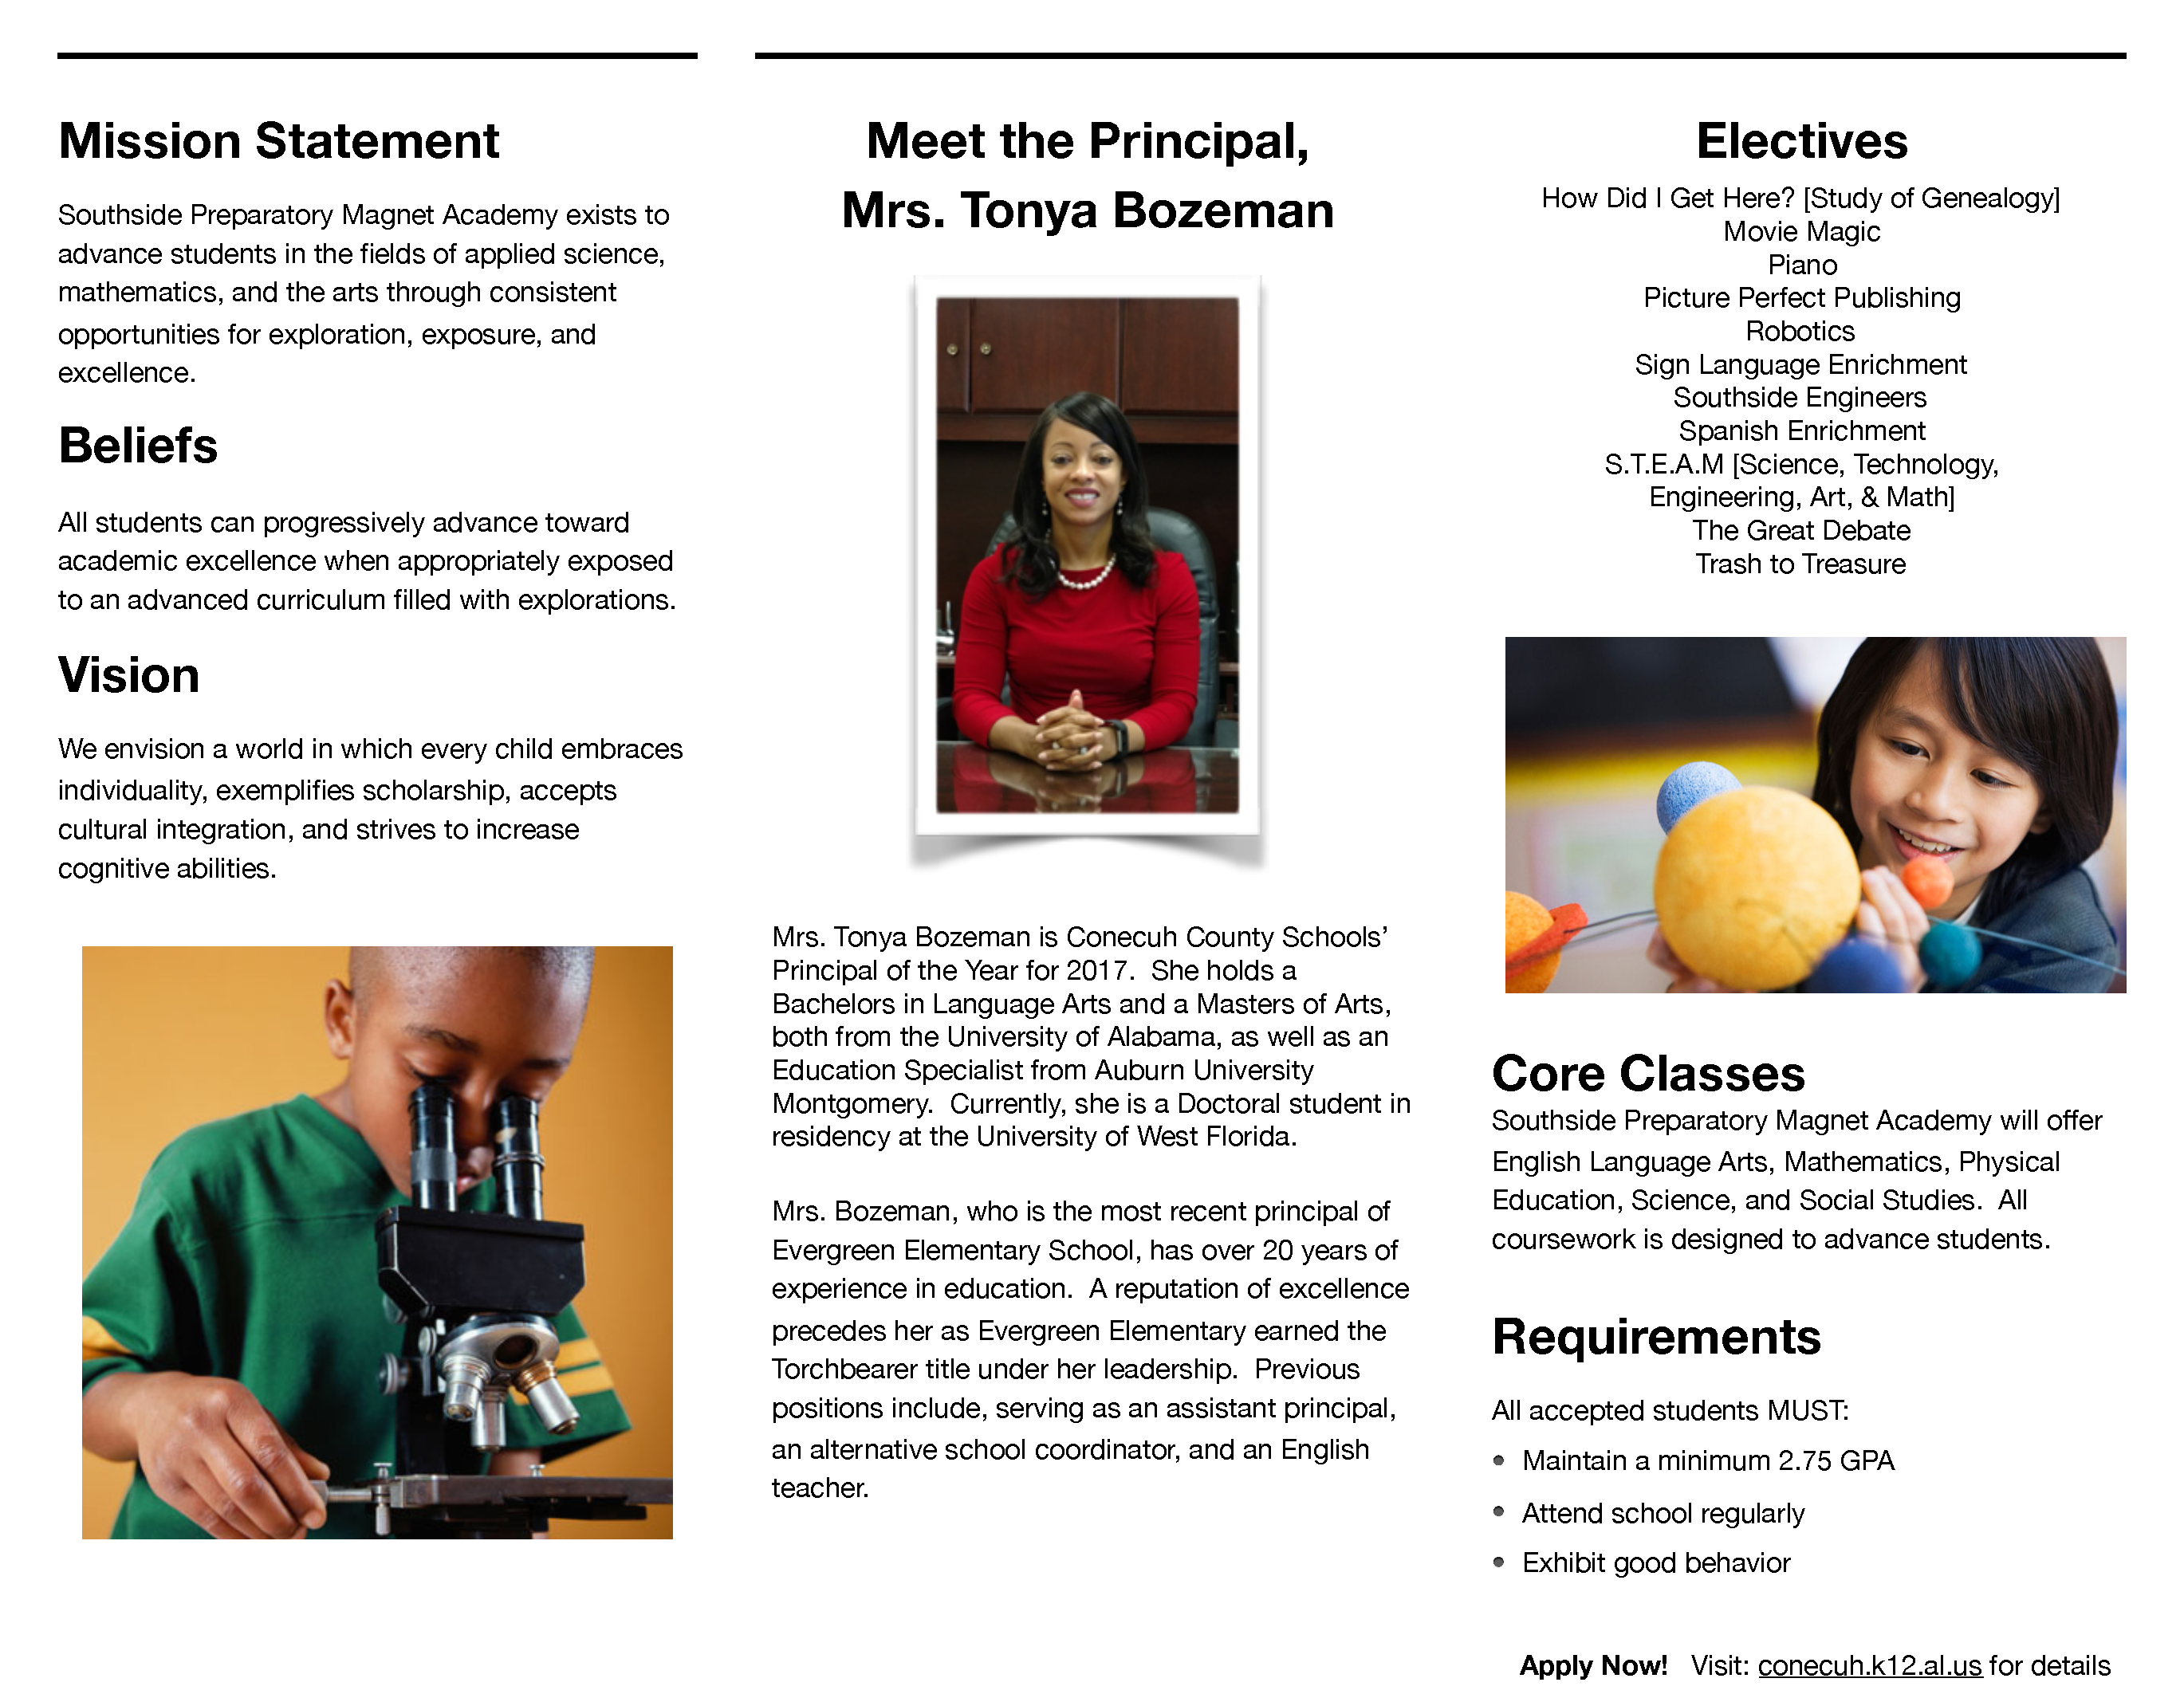 District mission statement, principal and electives